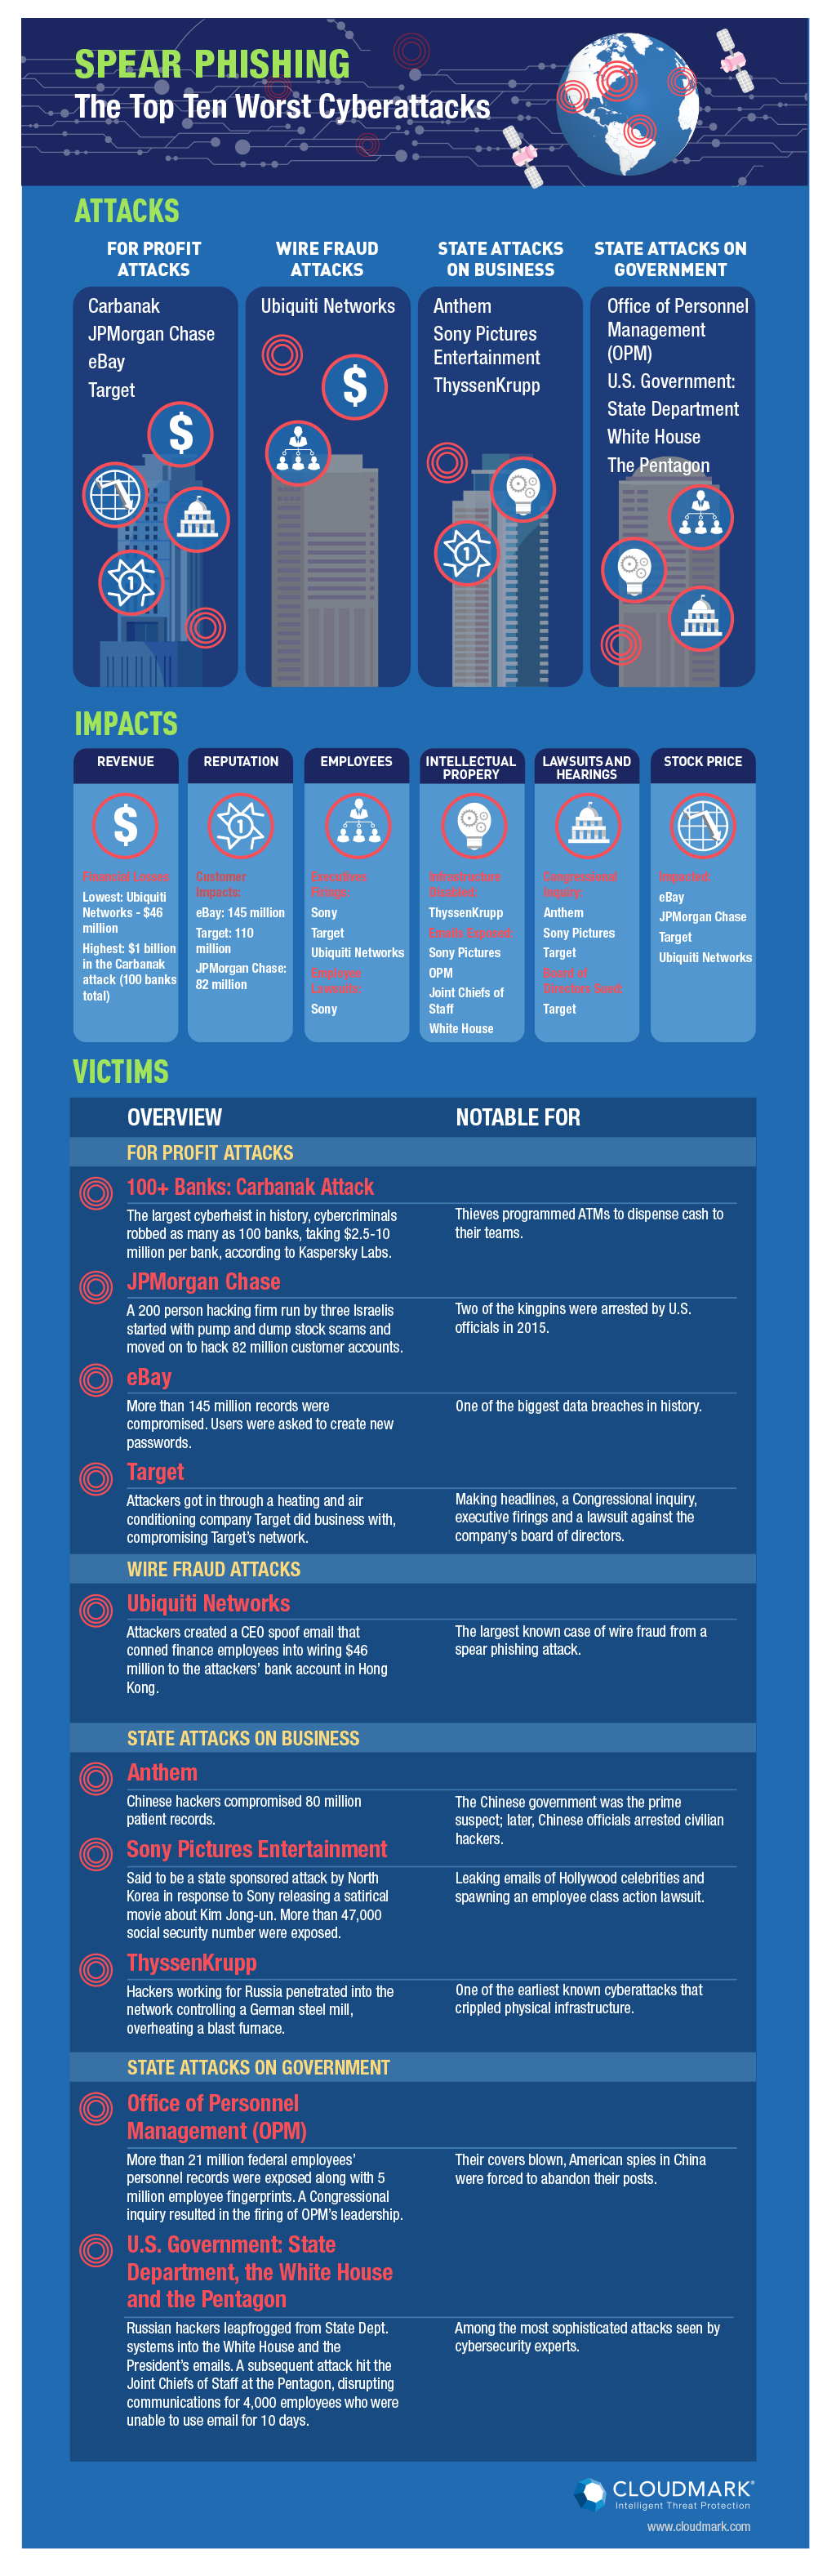 Phishing Attacks Hit the C-Suite With High Value Scams [INFOGRAPHIC]